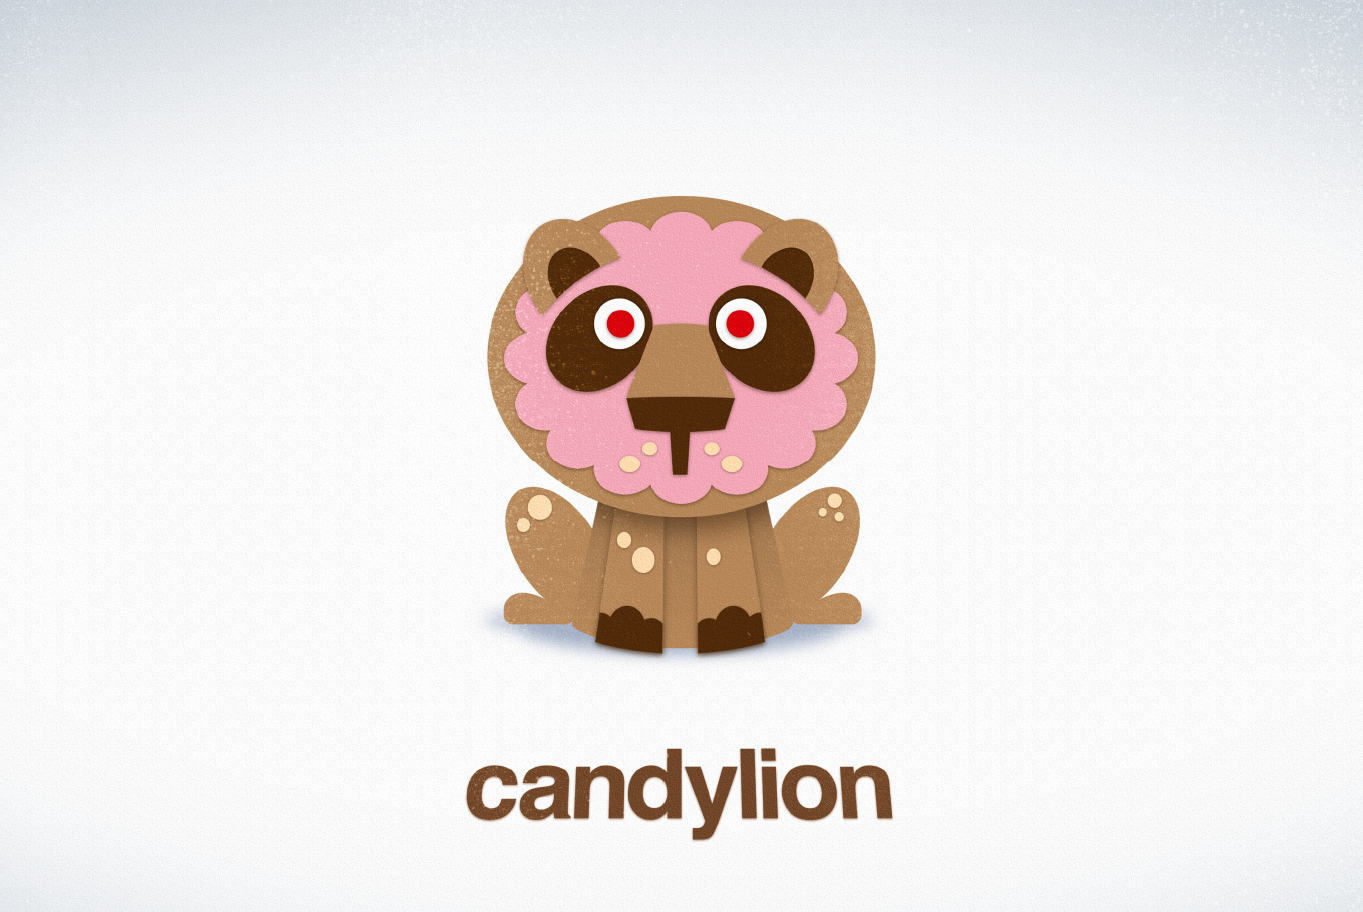 The Candylion - a pink, cartoon lion